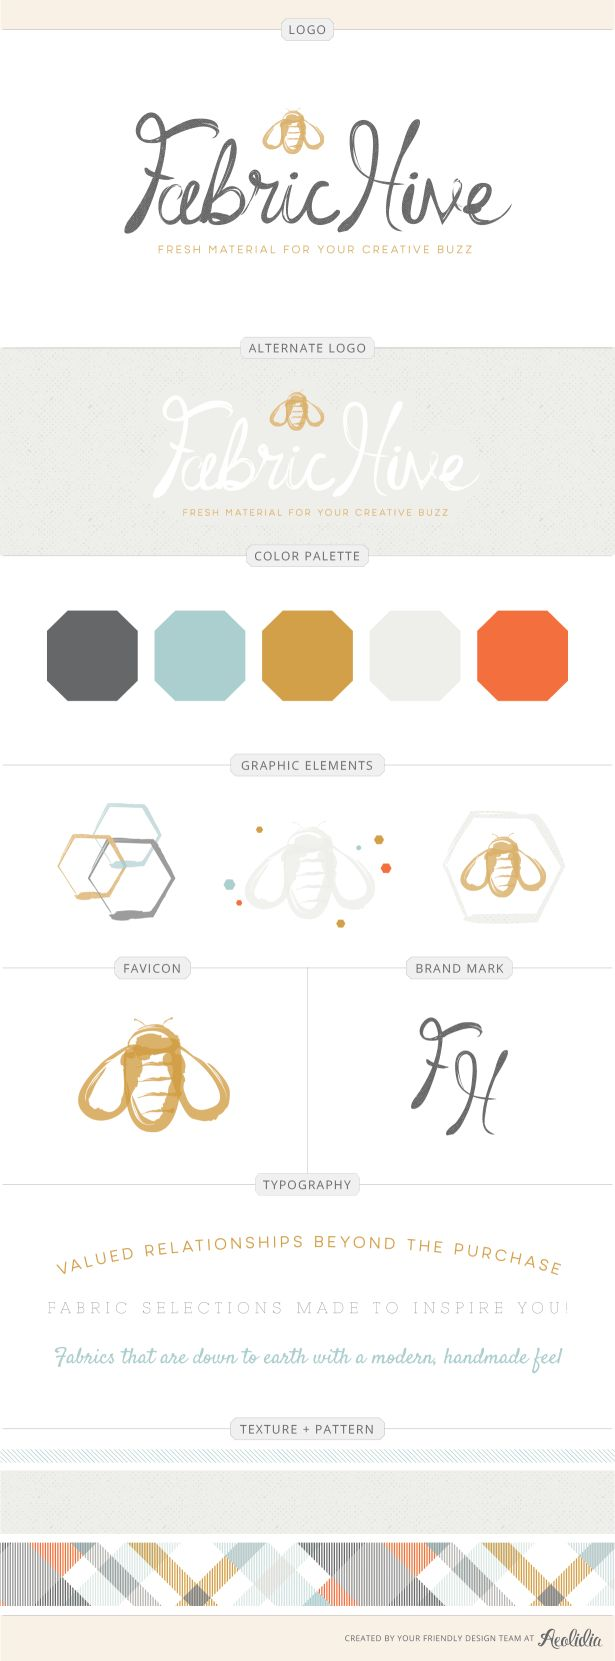 Fabric Hive logo and identity by Aeolidia.